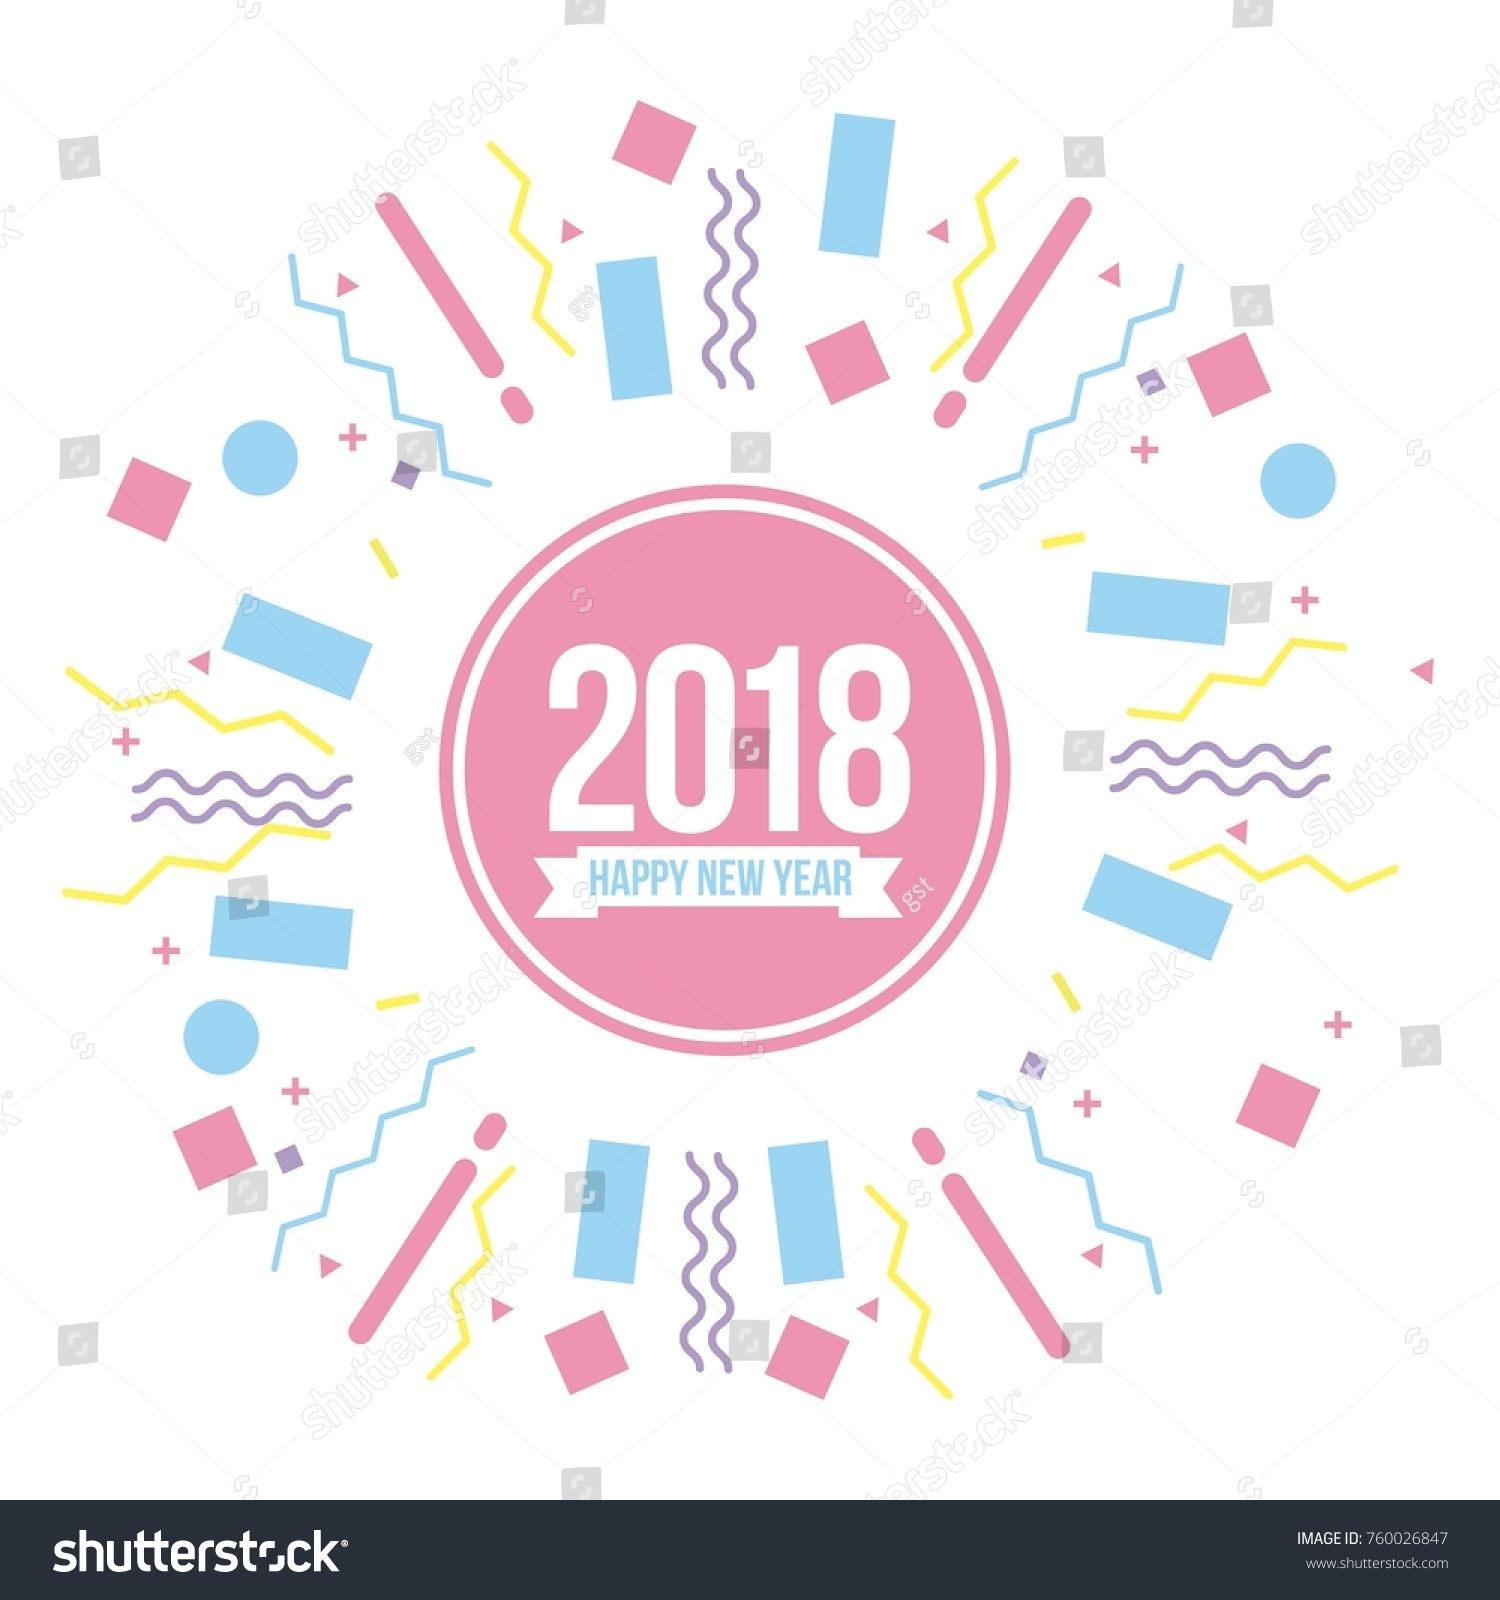 Happy New Year 2018 Poster Greeting Stock Vector (Royalty Free ...